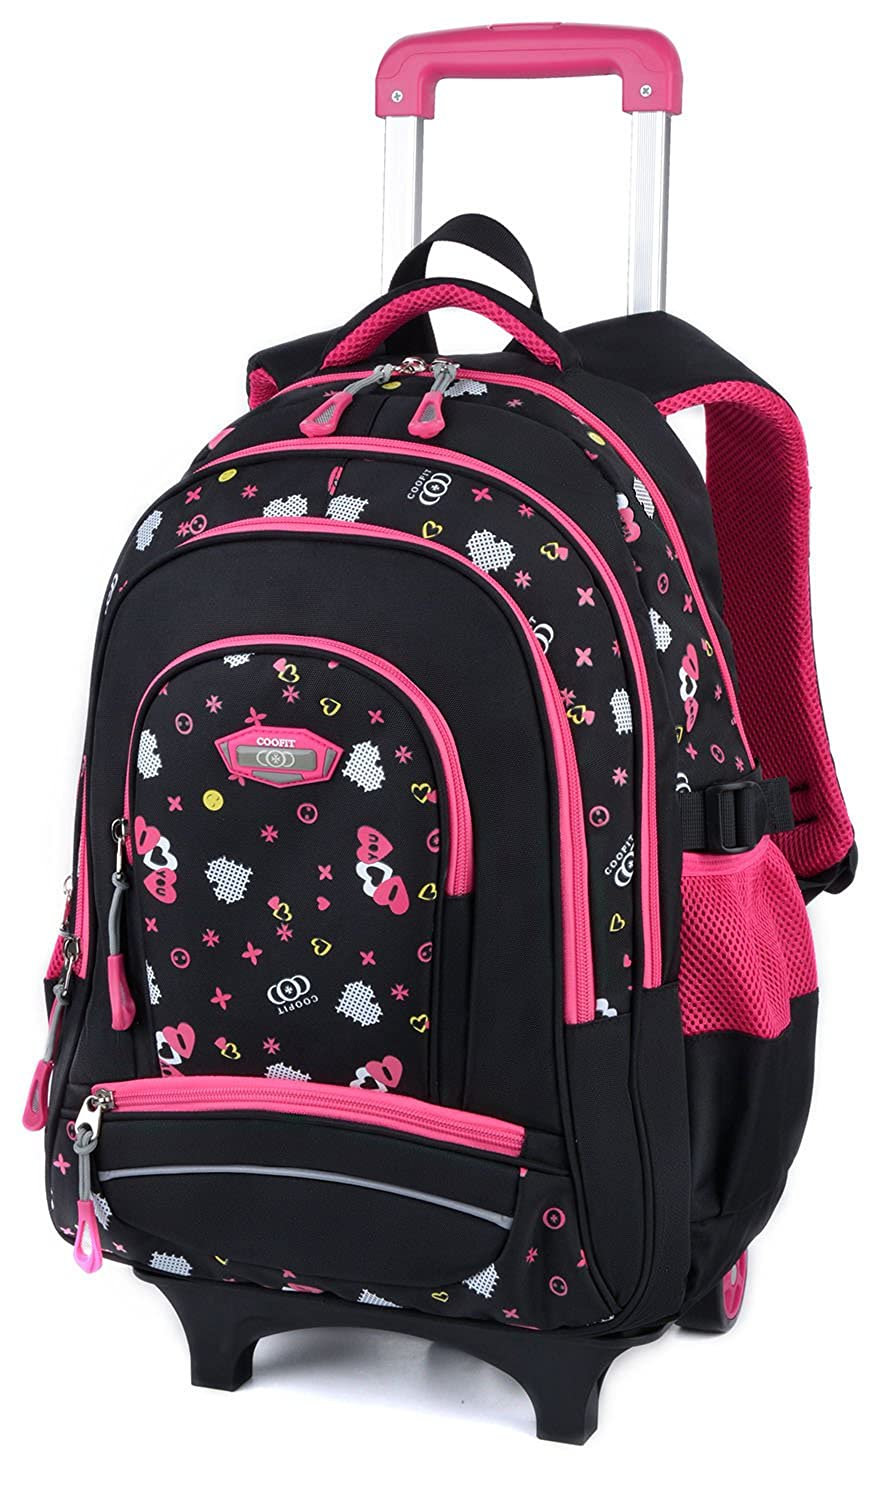 Amazon.com: Kids Rolling Backpack Printed Wheeled Backpack Carry on Luggage Backpack for School Camping Travelling: COOFIT